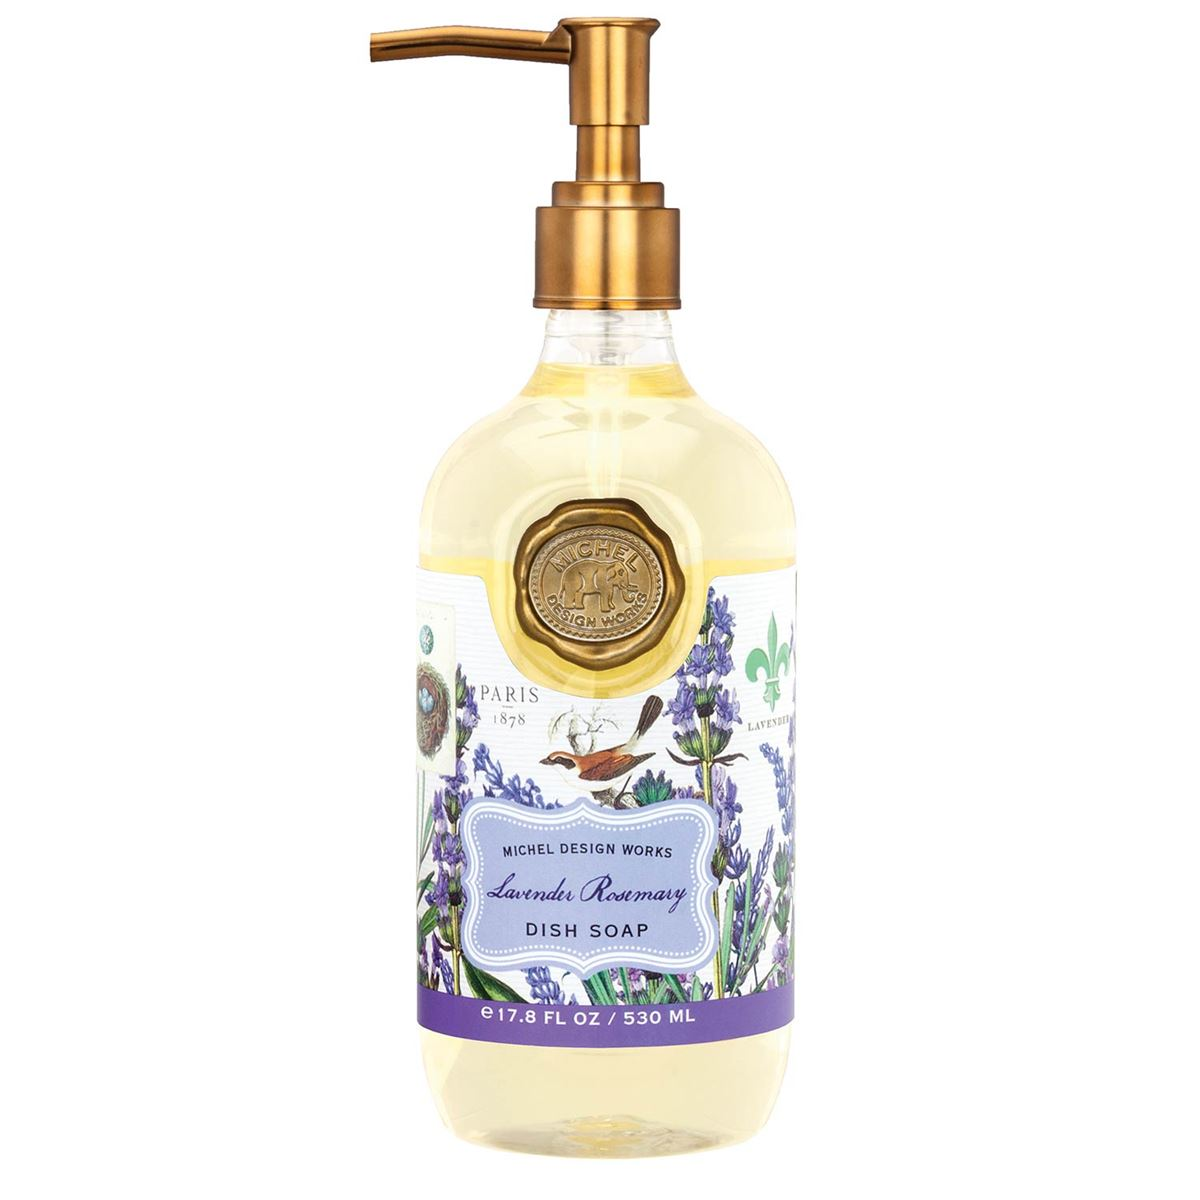 Michel Design Works Lavender & Rosemary Dish Soap